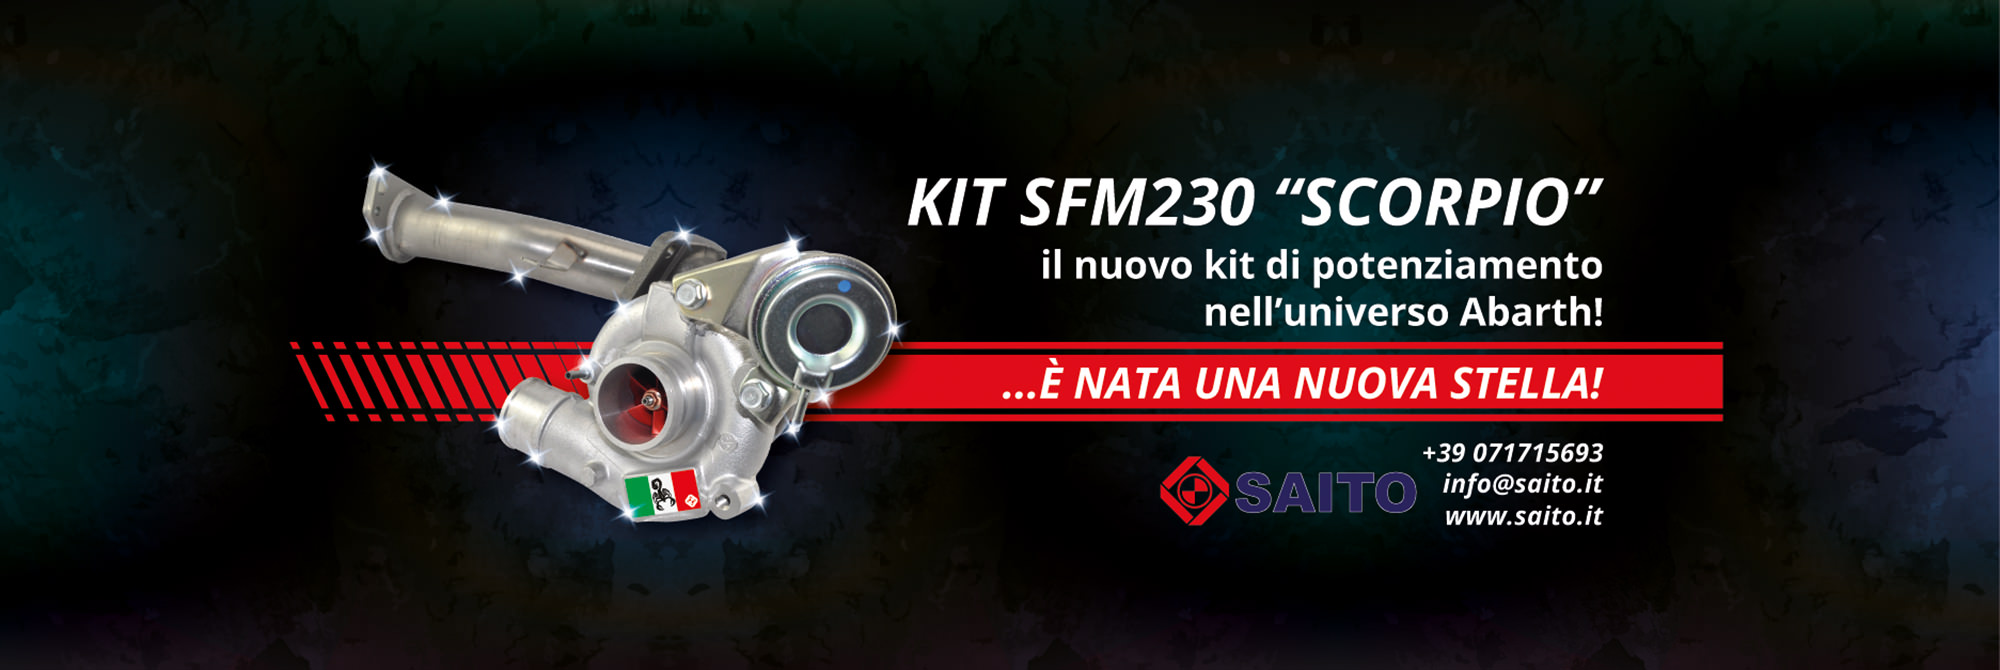 Slide SFM230 Kit Abarth | SAITO